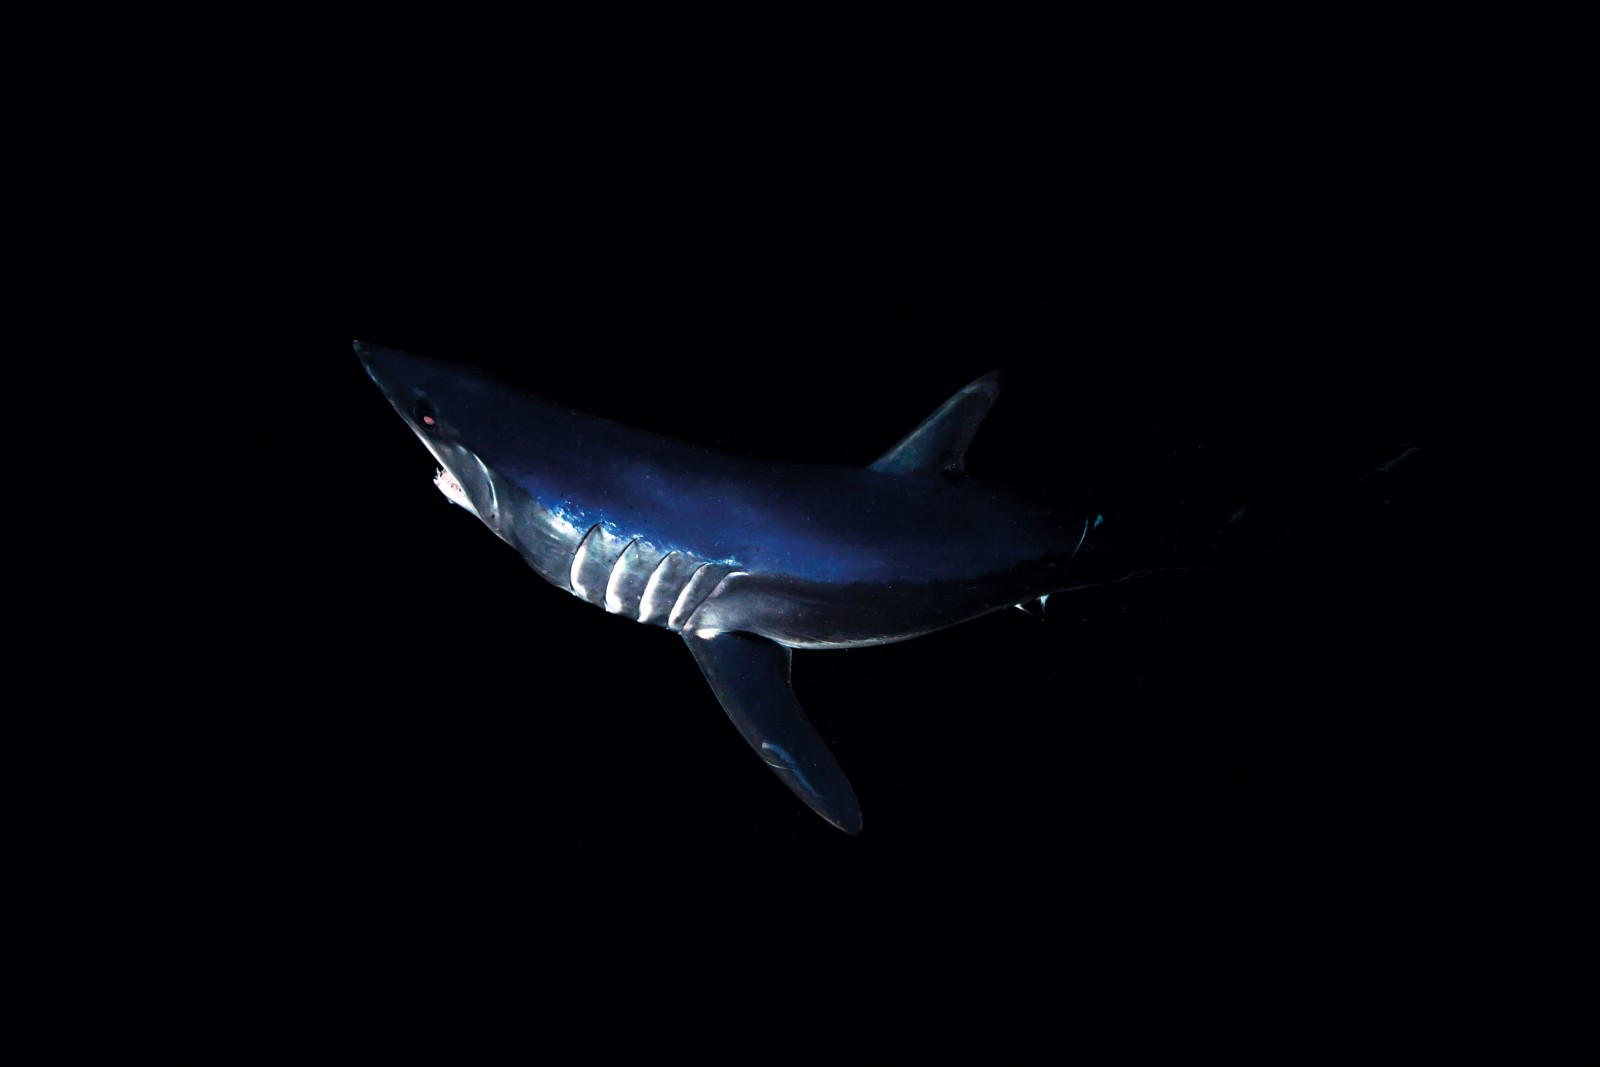 The electrifying metallic blue of mako's dorsal surfaces is a perfect colour match for the inky oceanic waters that are its home. Shortfin mako are a global species, found in every ocean of the world, but they prefer warmer, rather than cooler, waters--such as off Auckland's west coast, where most of the photographs in this story were taken. A second species, longfin mako, has much longer pectoral fins, but is no found in New Zealand seas. Mature male shortfin mako reach about three metres in length, while females can grow a metre longer.